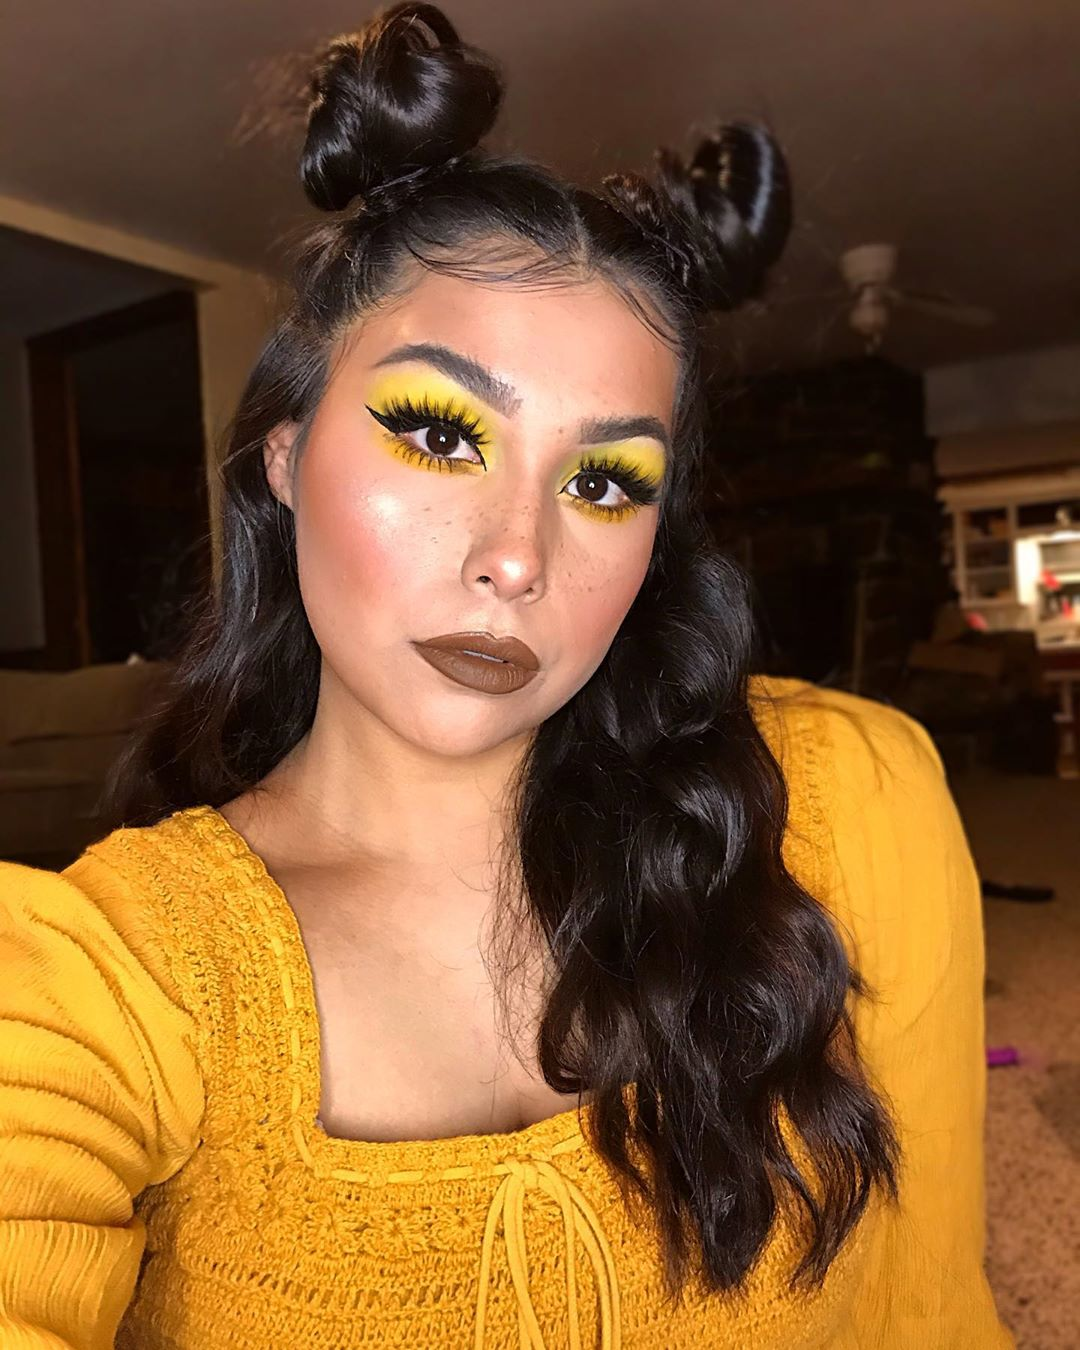 Faux Freckles Makeup technique with yellow eyeshadow